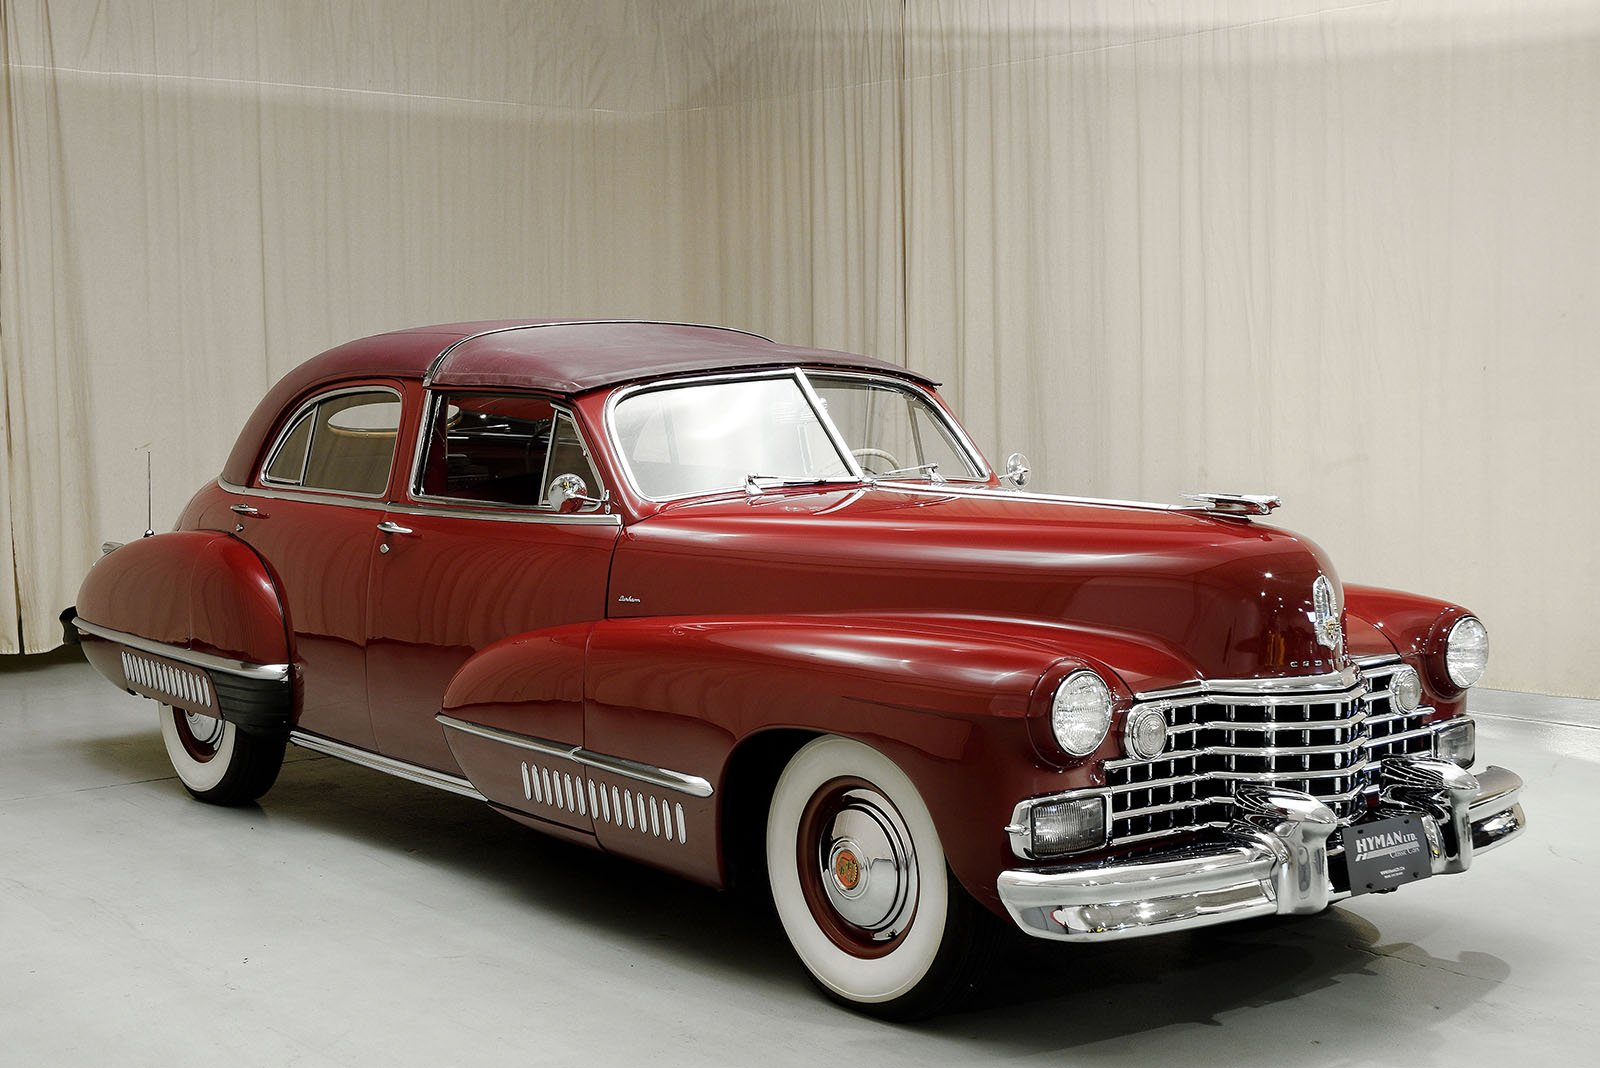 1942 cadillac series 60 special derham town car hyman ltd classic cars. Black Bedroom Furniture Sets. Home Design Ideas